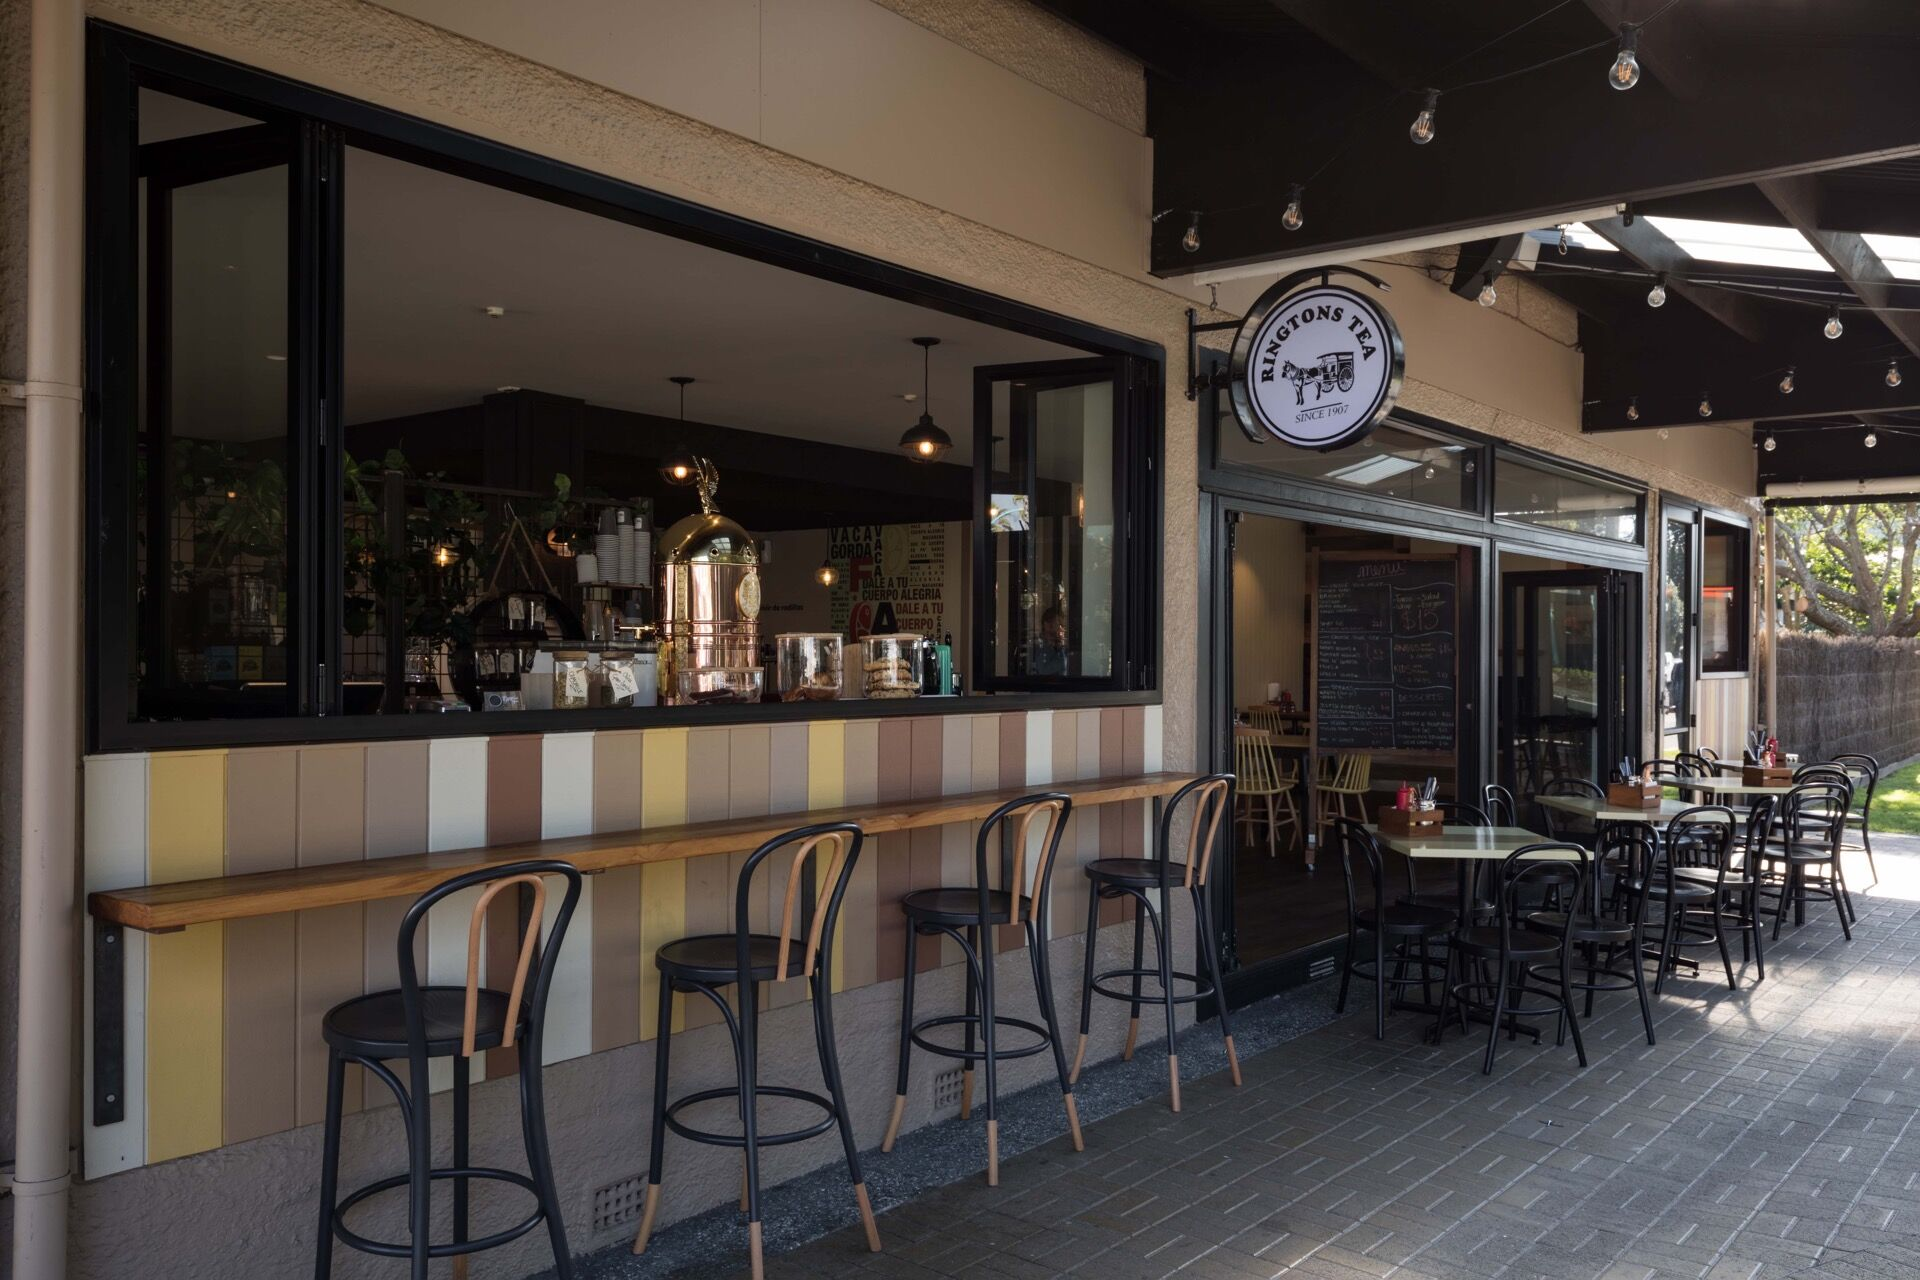 Restaurant Furniture, Chairs, Tables, bar stools